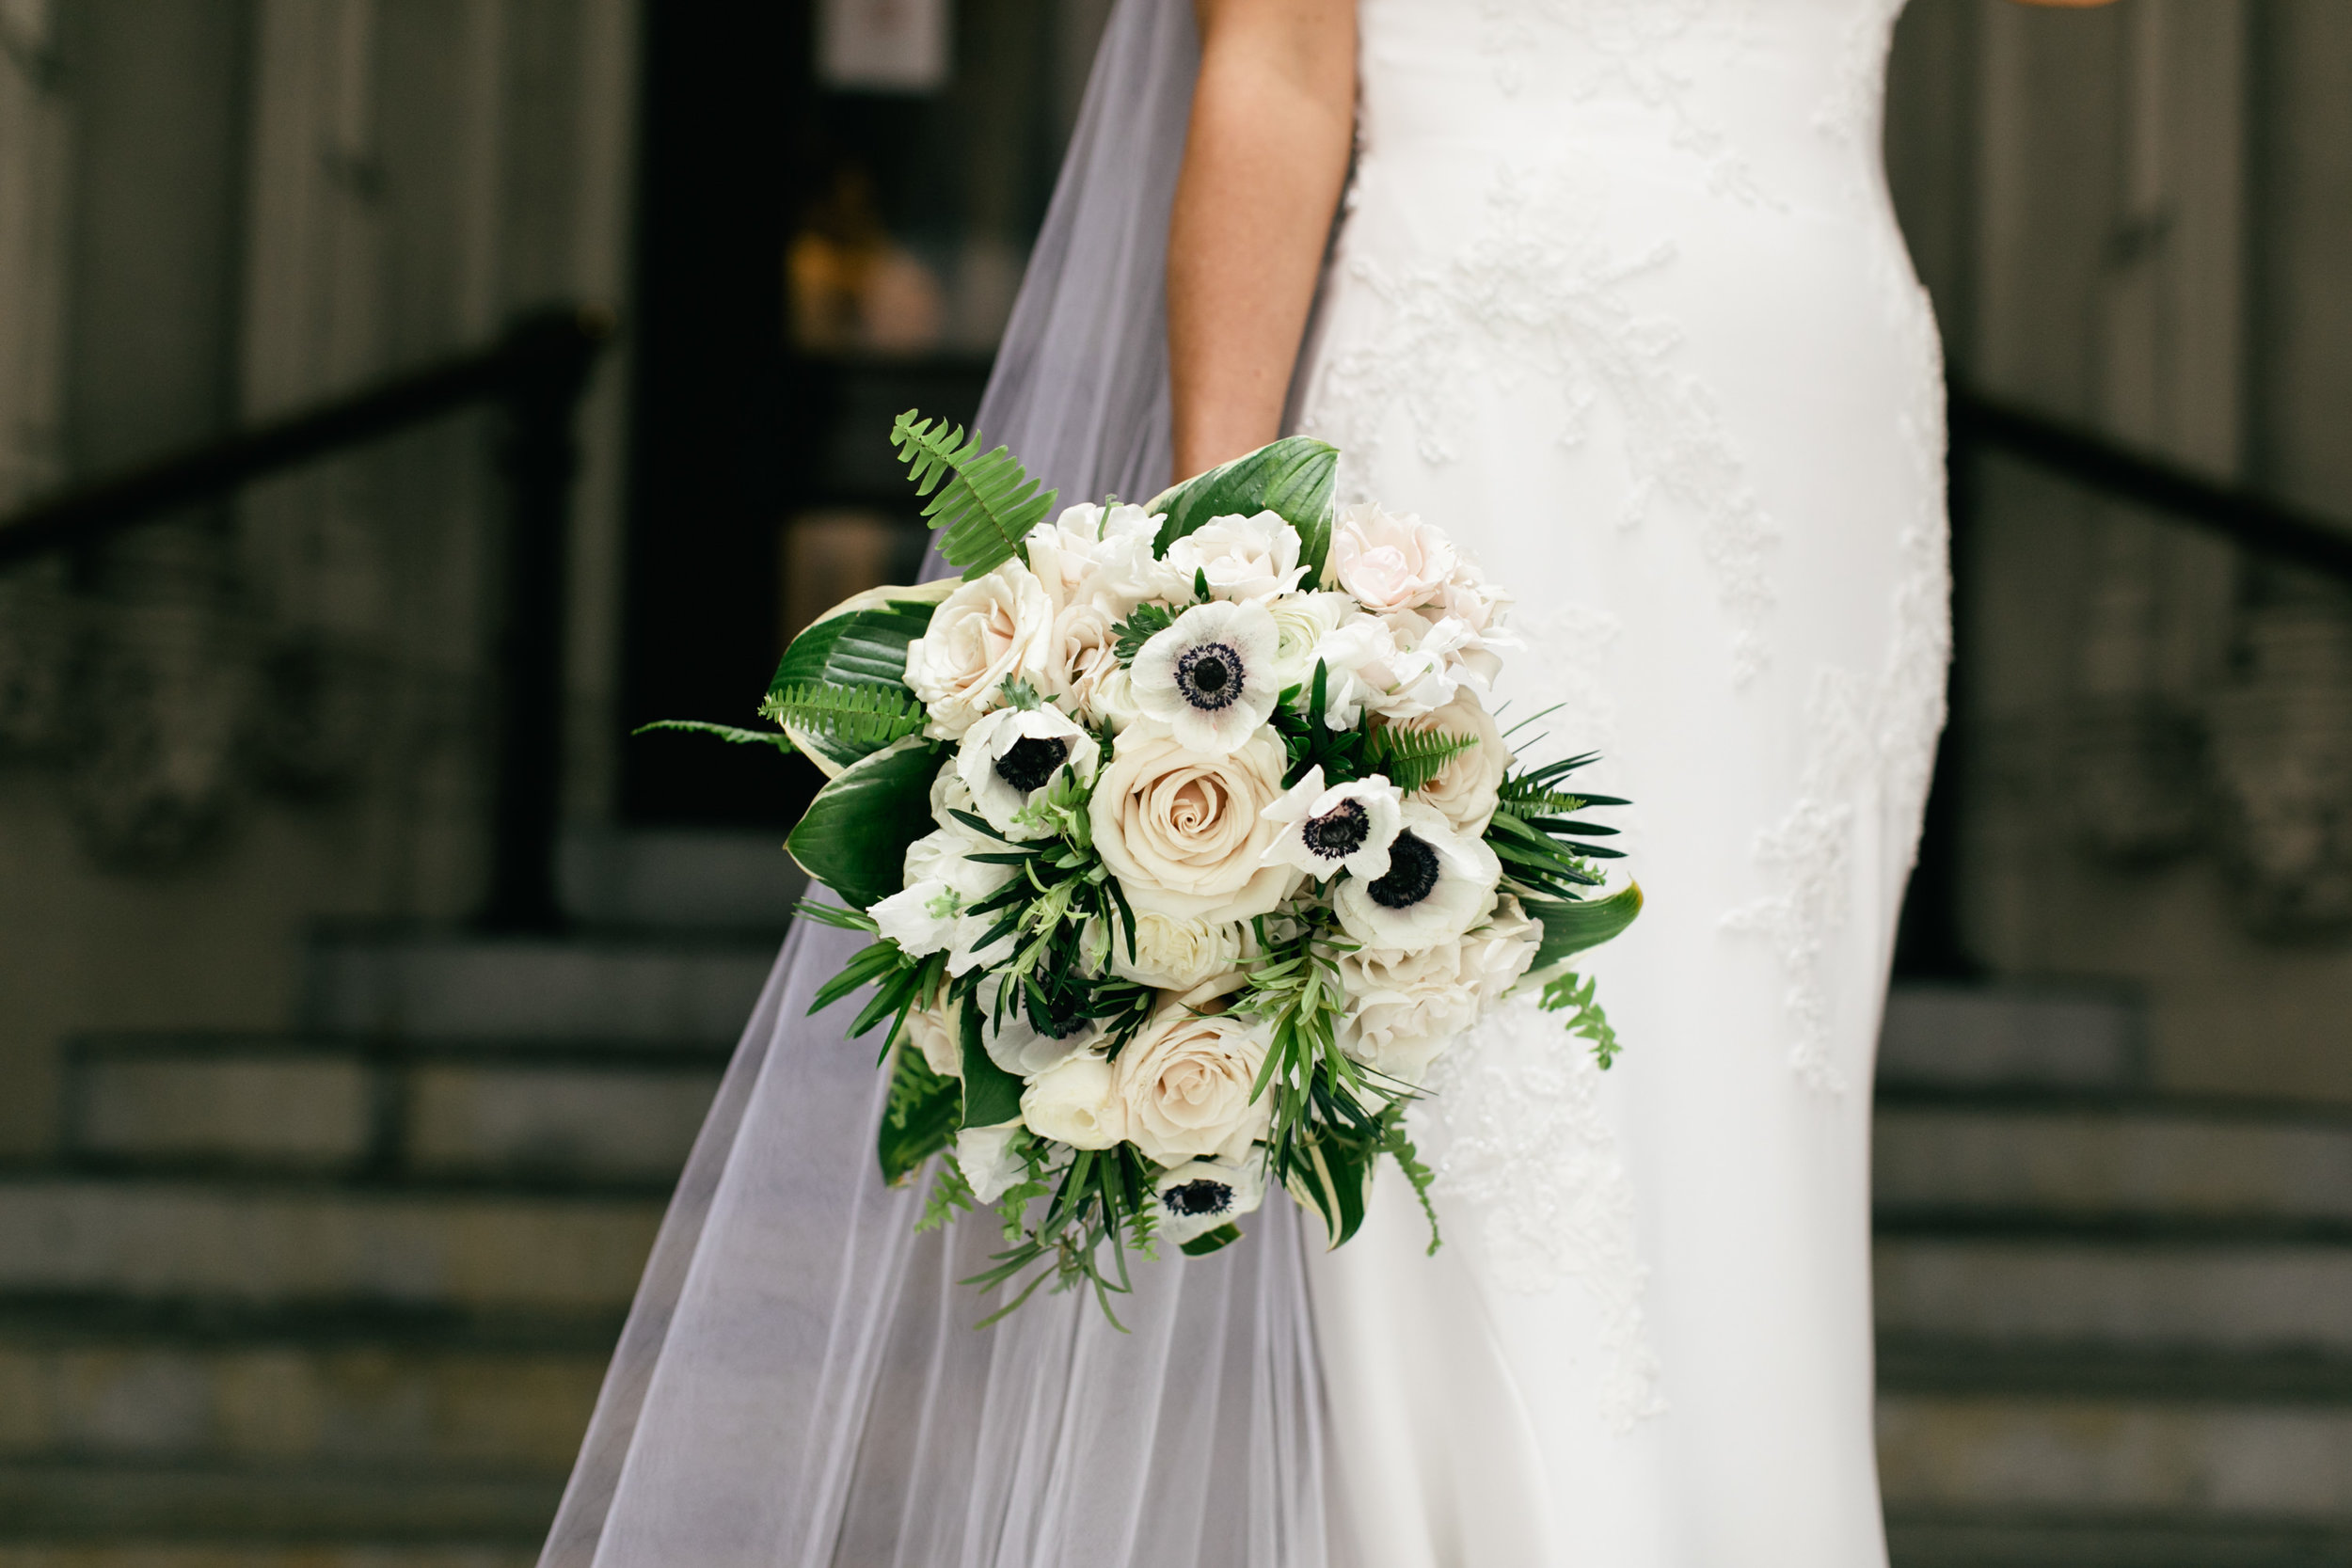 photography-wedding-weddings-natural-candid-union league-philadelphia-black tie-city hall-broad street-editorial-modern-fine-art-12.JPG